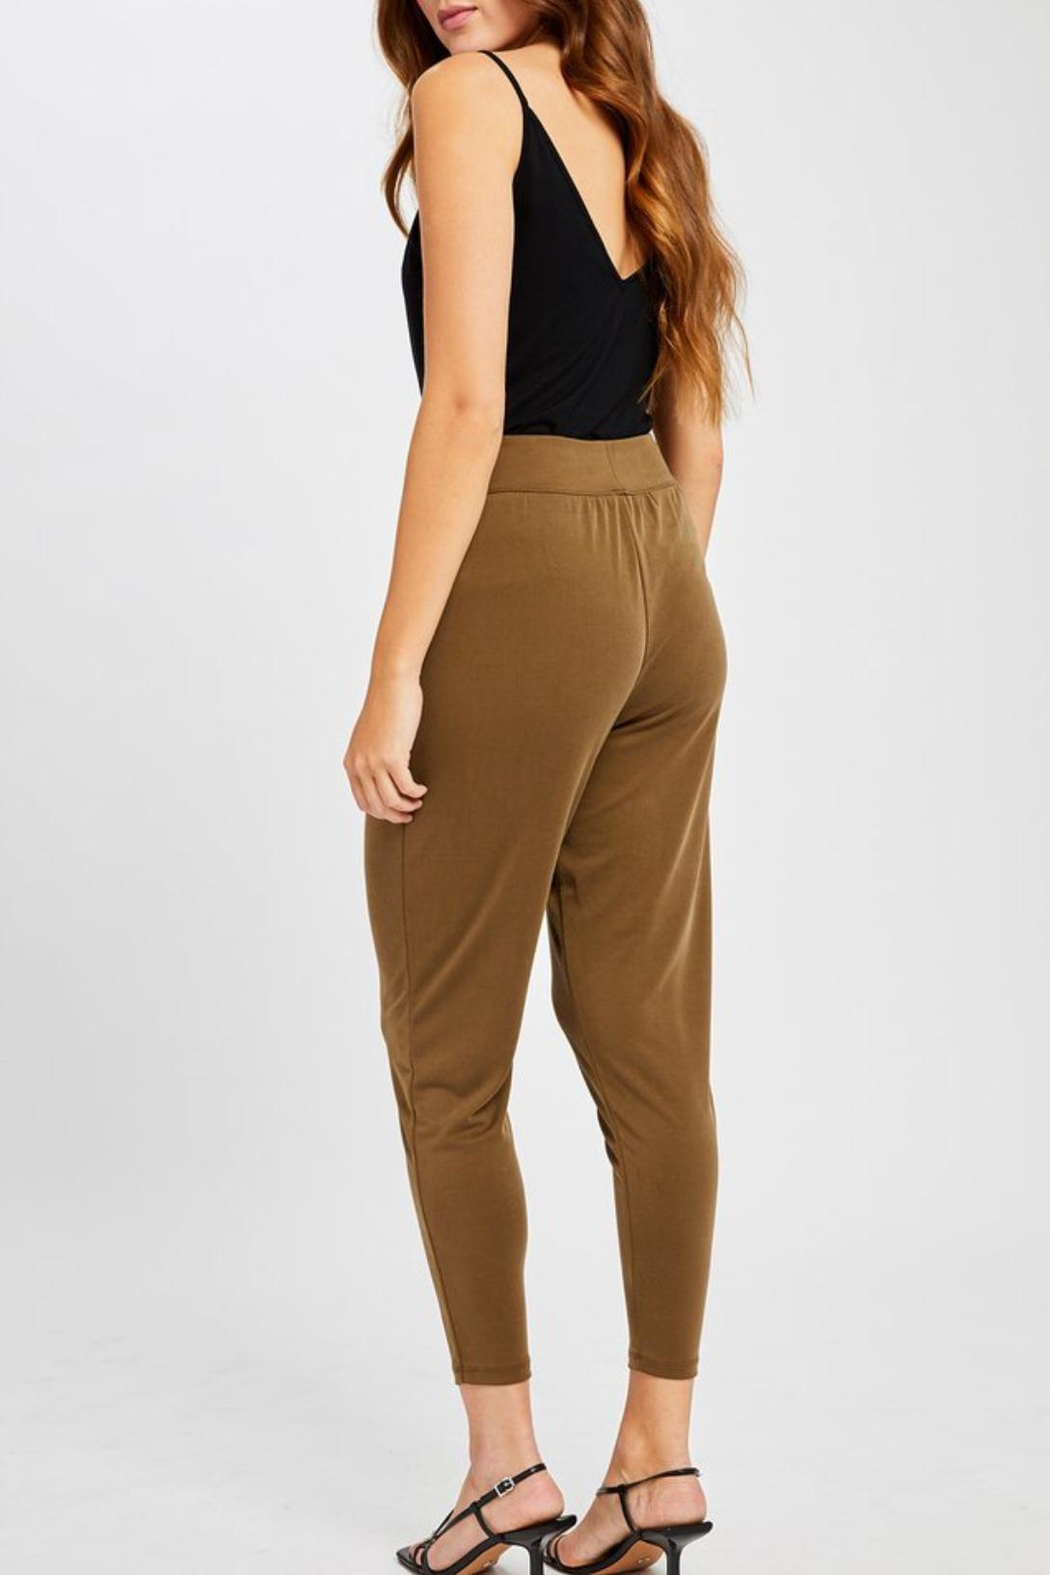 Gentle Fawn Highwaisted Cropped Pants - Side Cropped Image